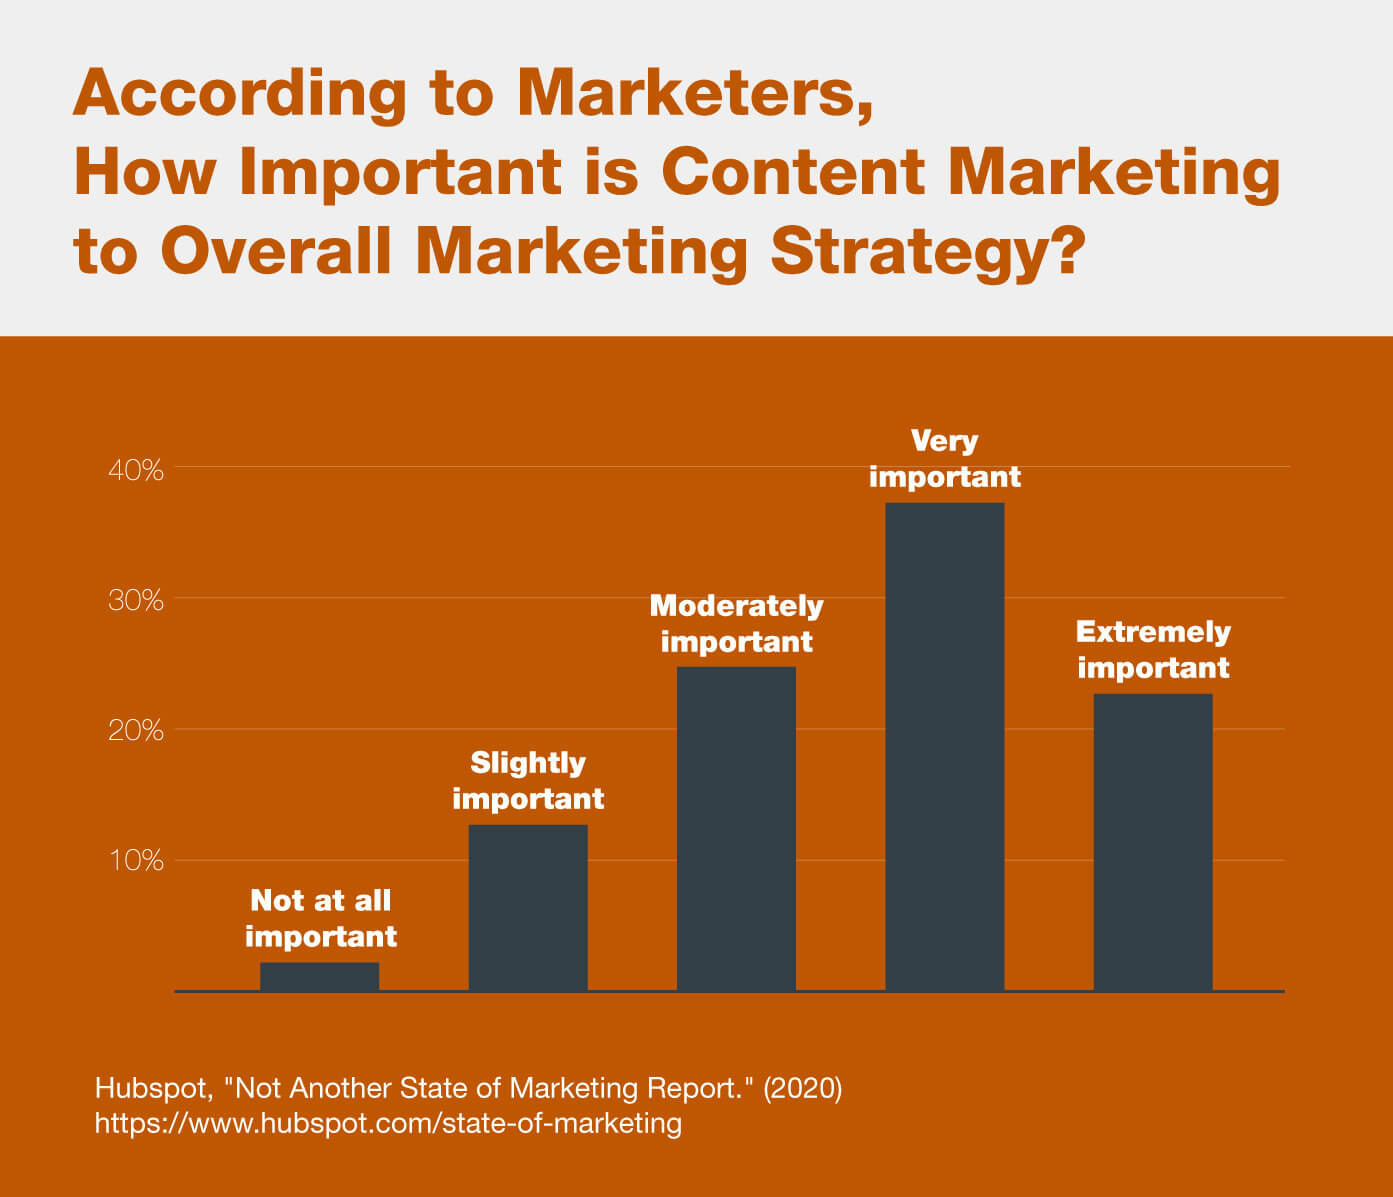 A graph showing how important content marketing is, according to marketers